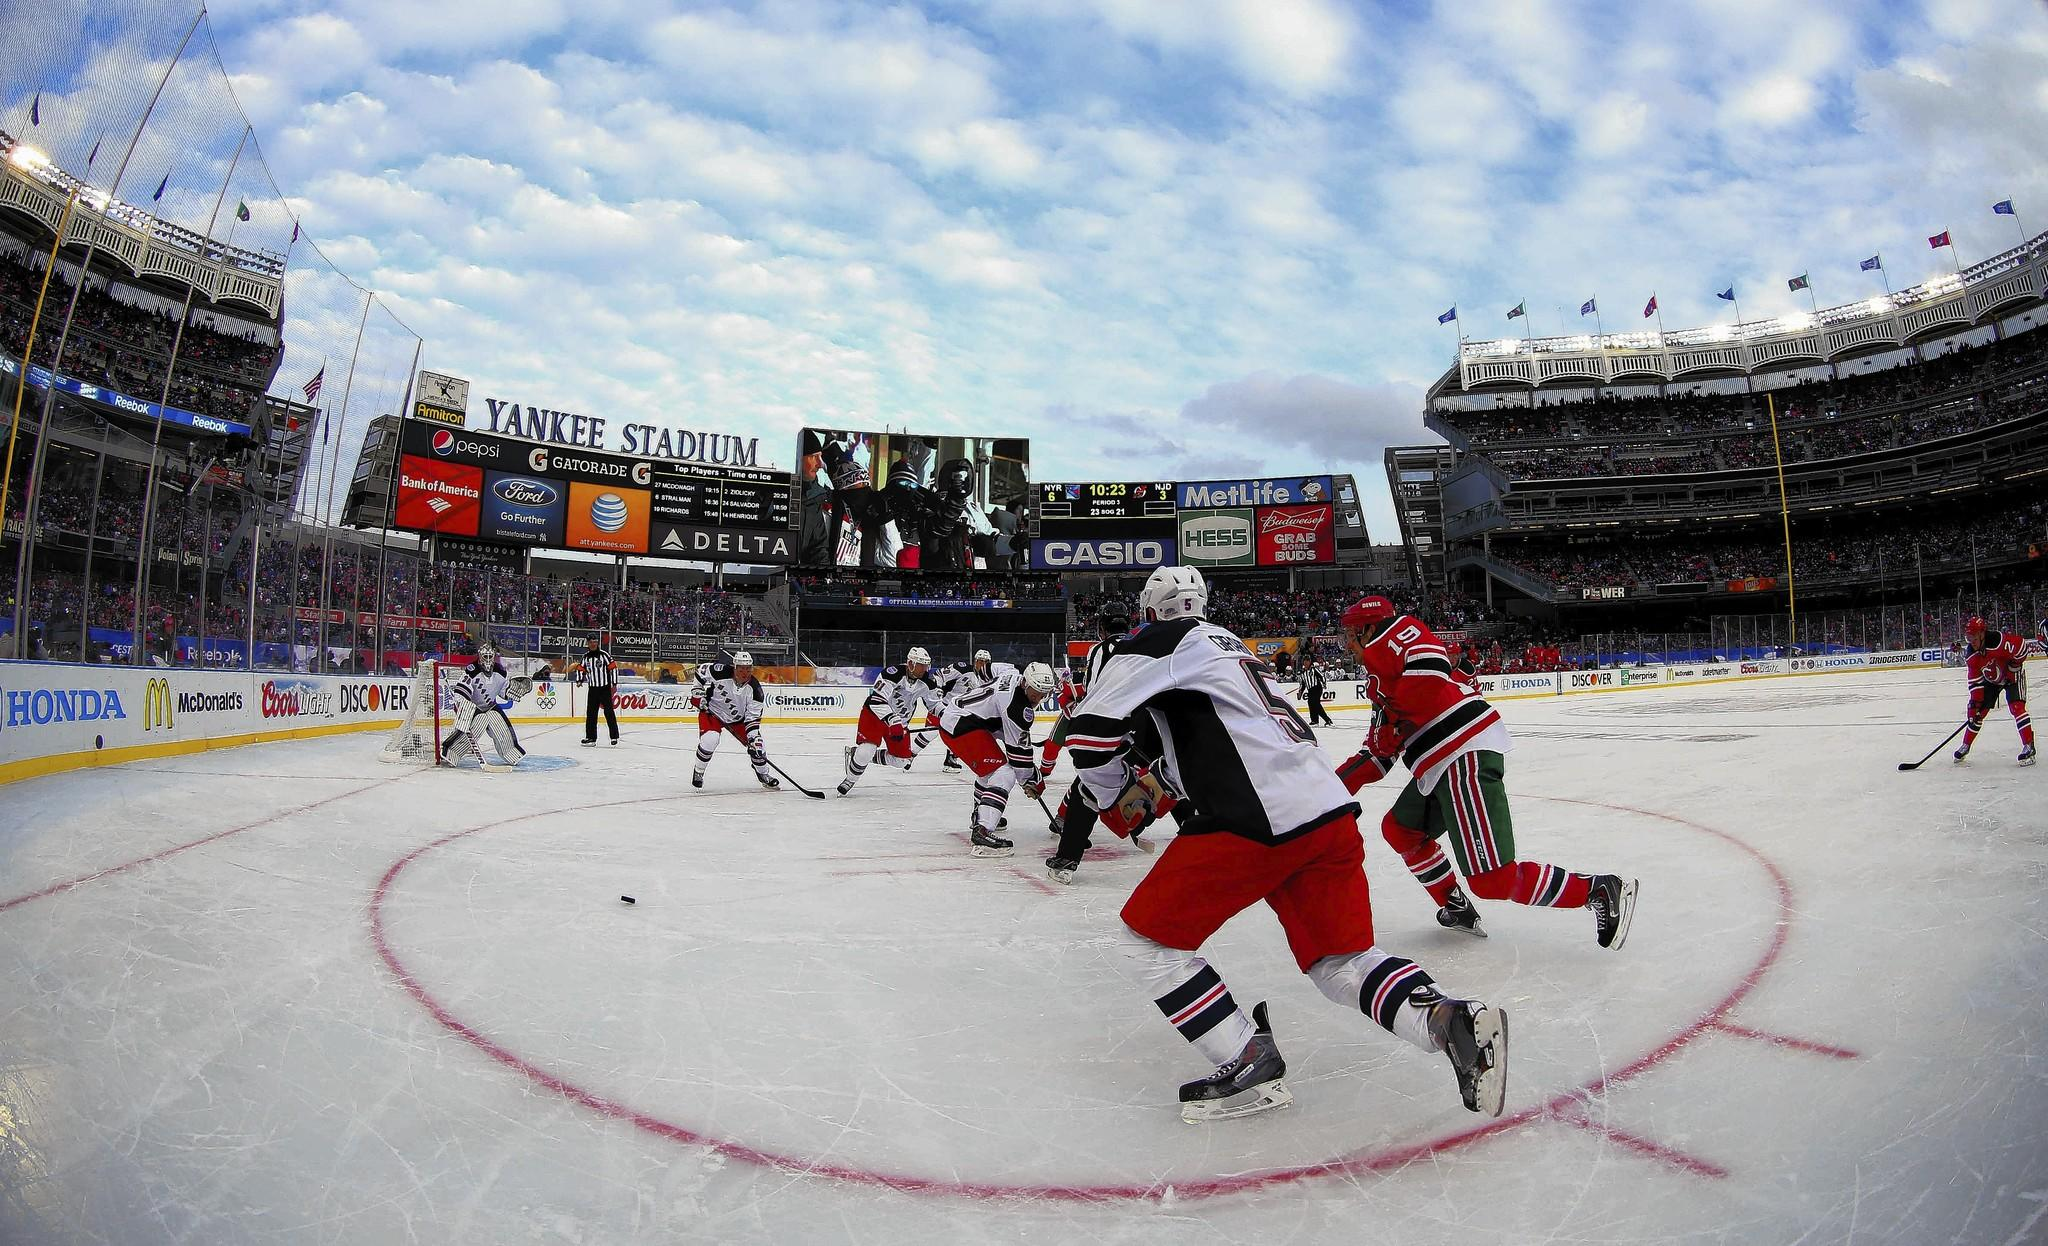 The New York Rangers and New Jersey Devils play at Yankee Stadium on Sunday.